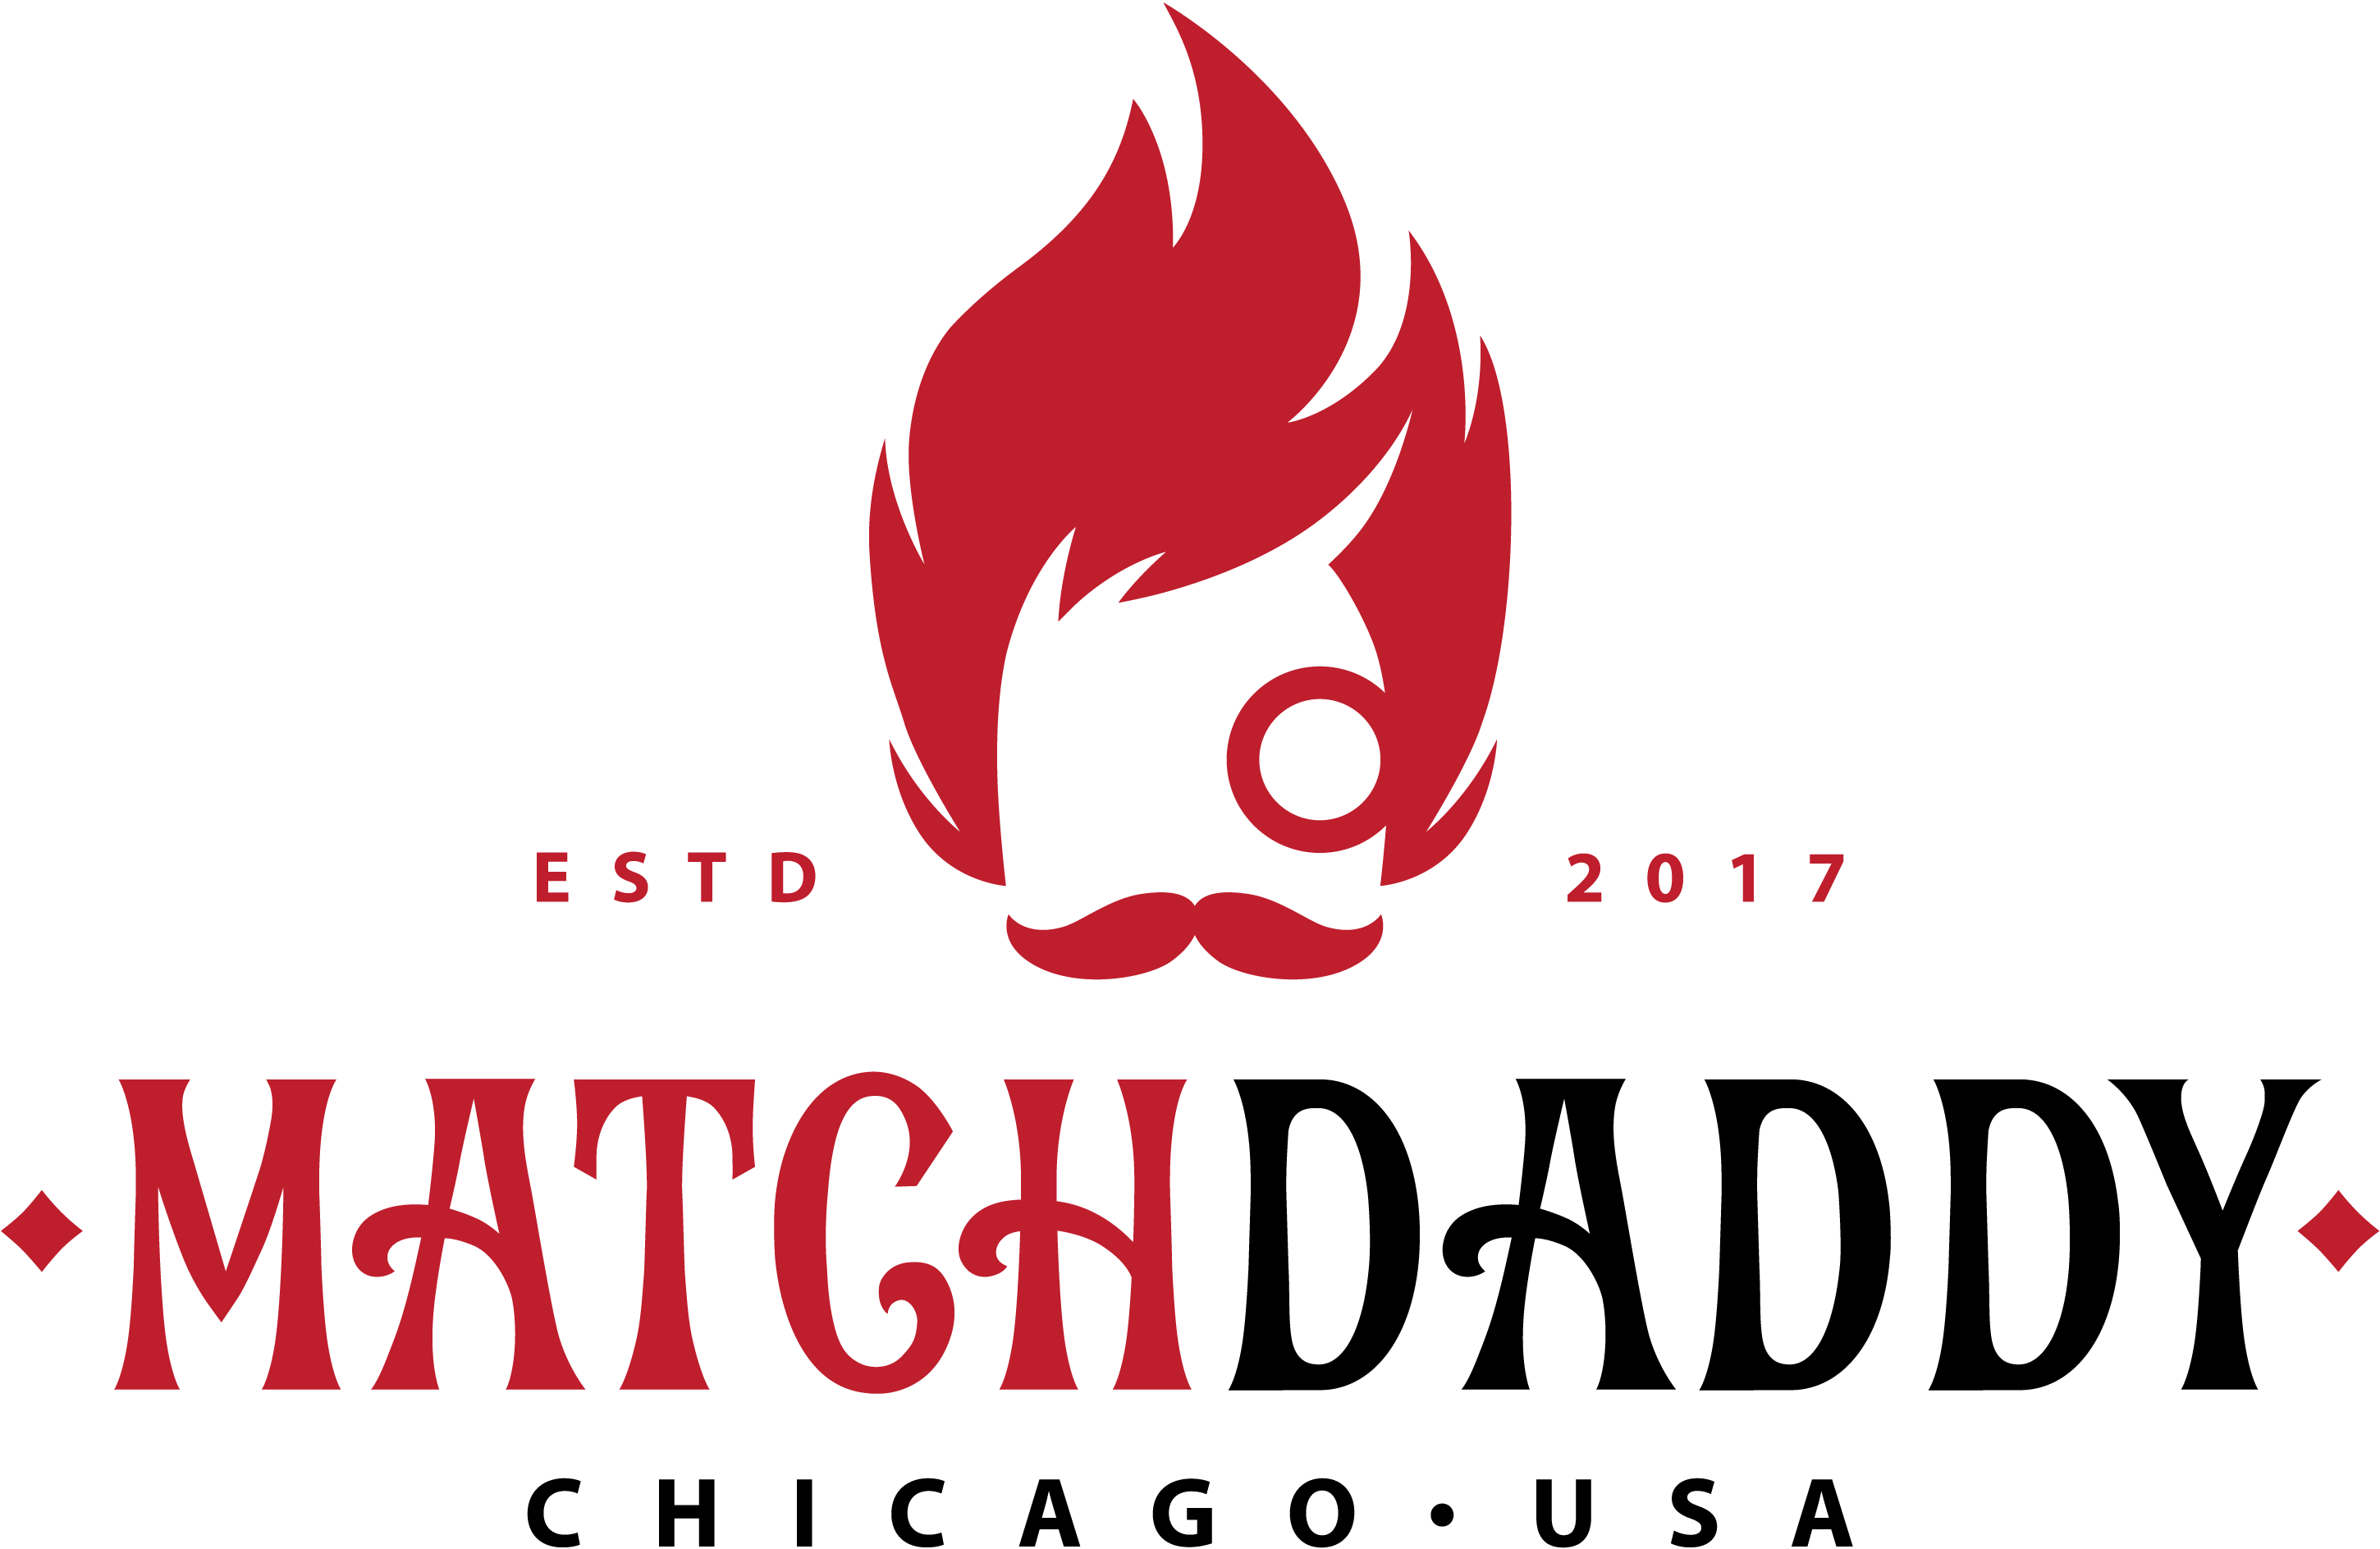 Set the world on fire! Need a clever logo for new custom match company.